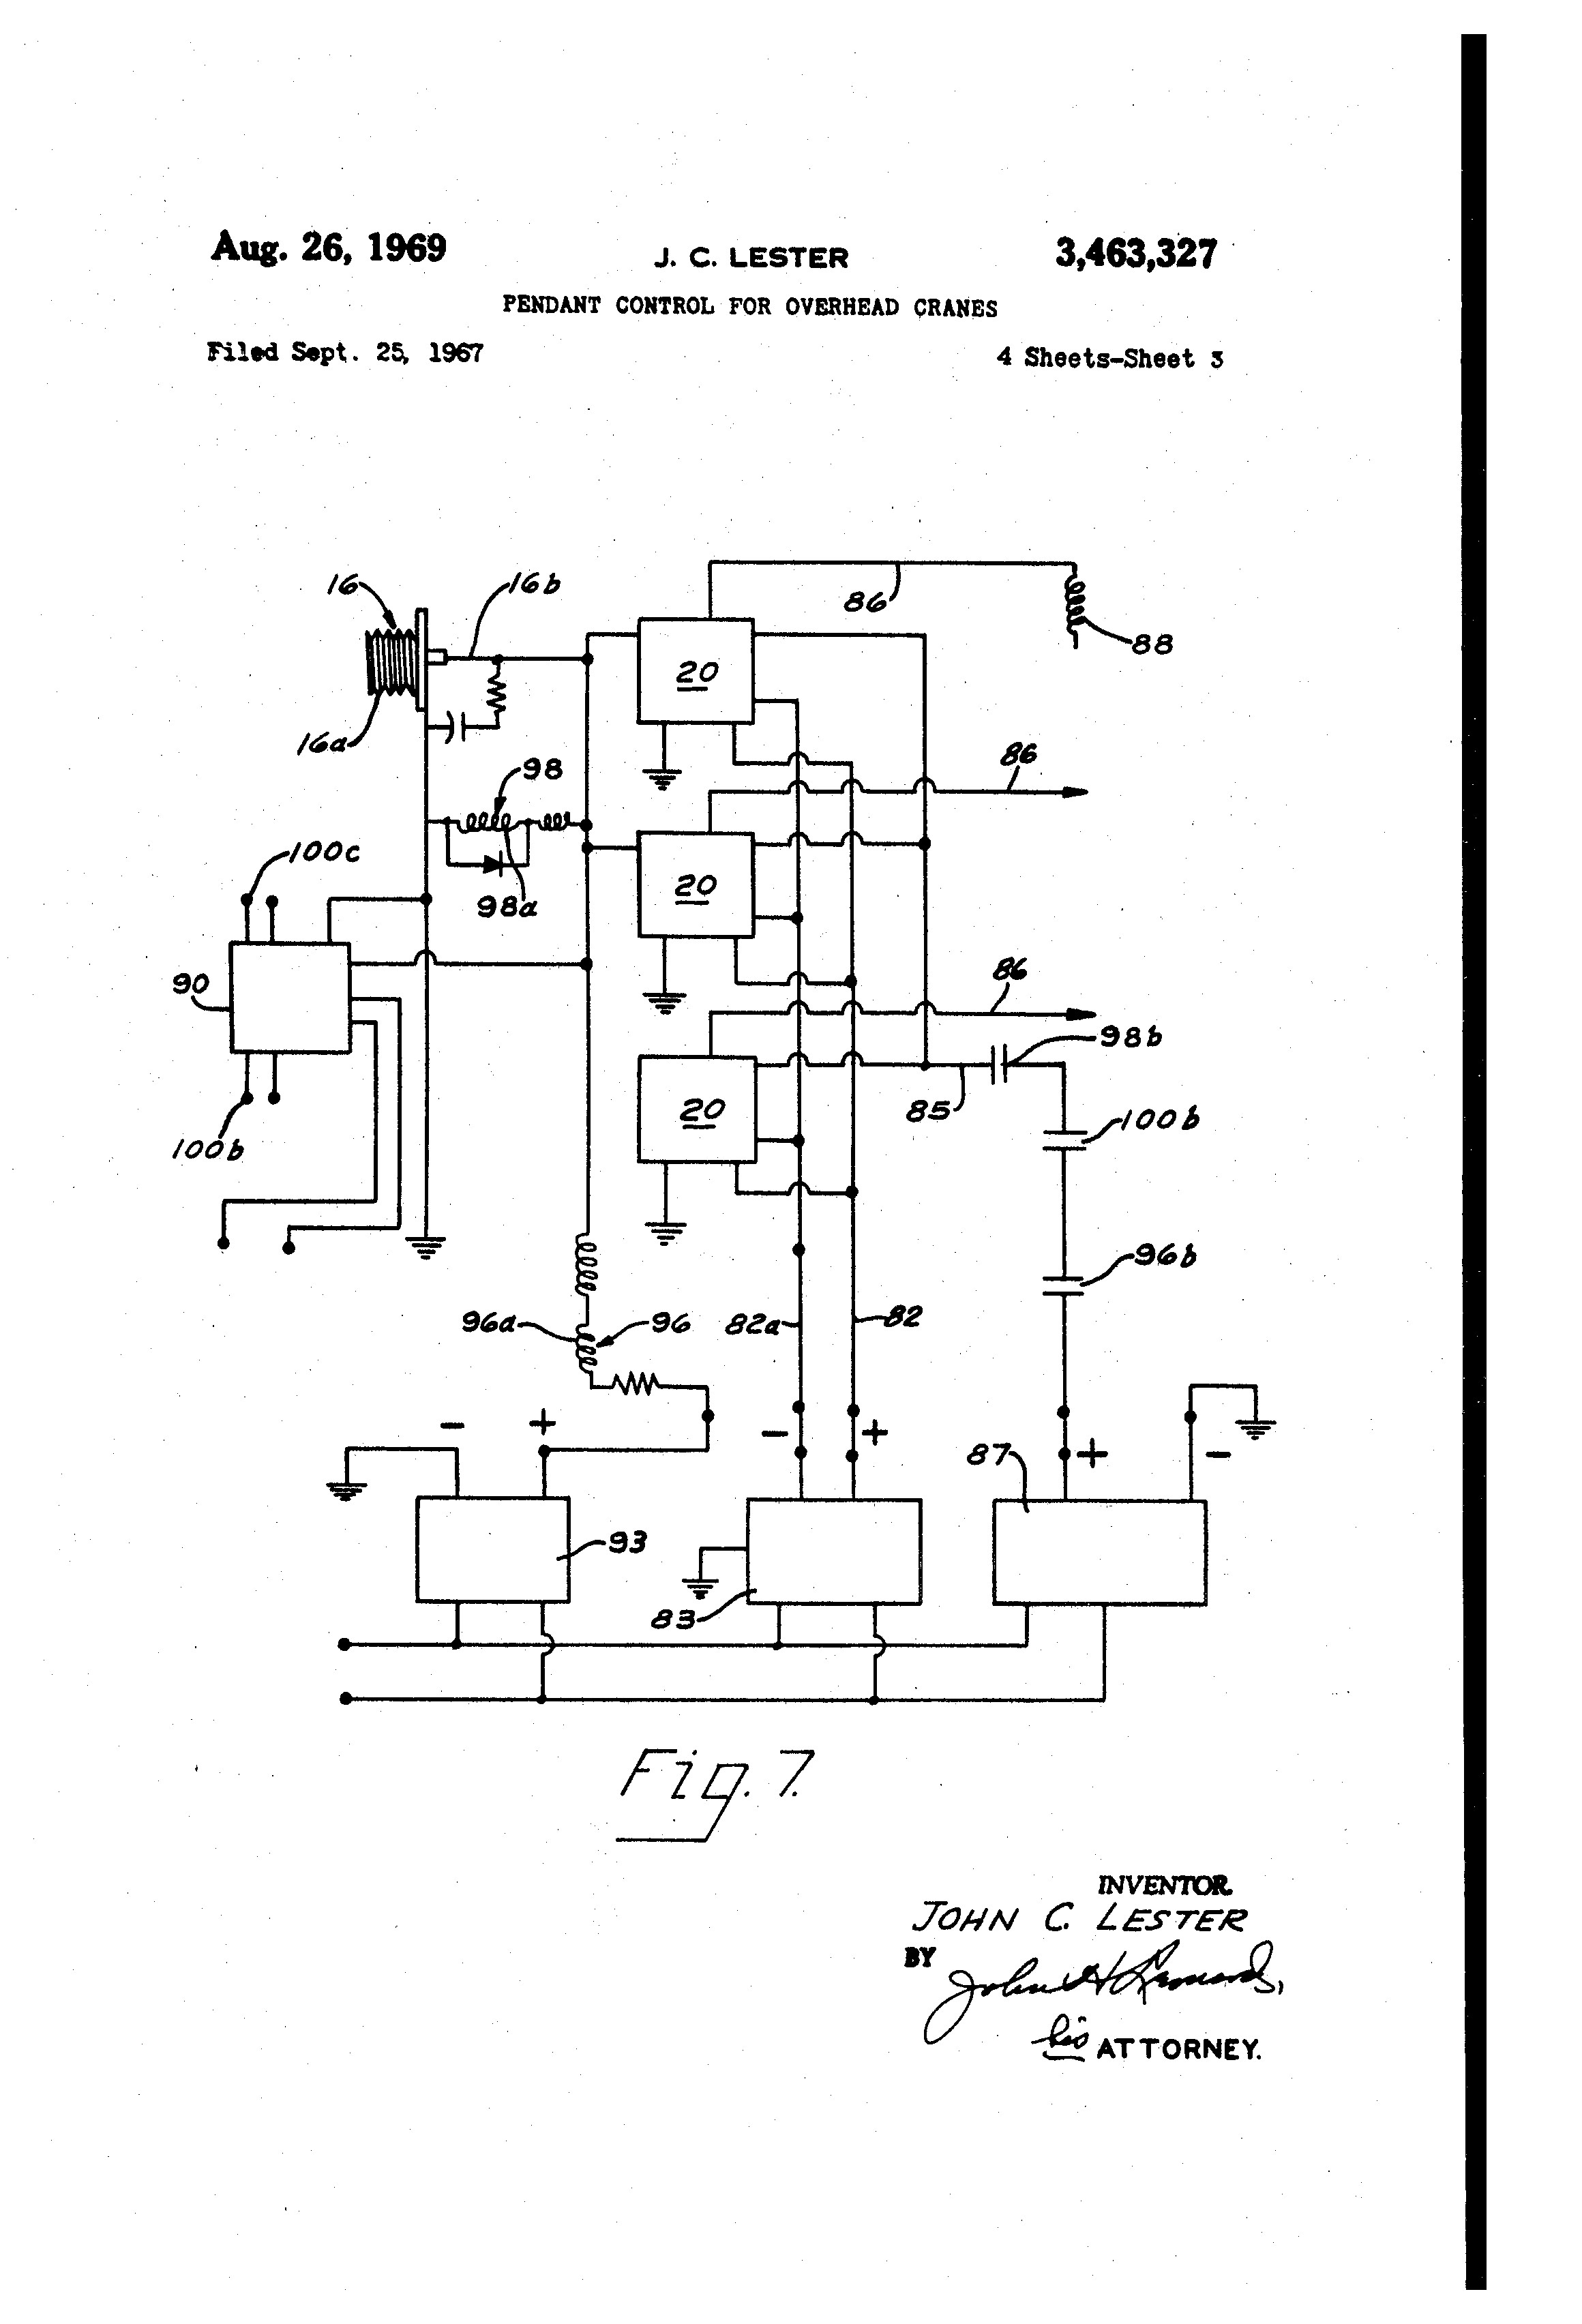 yale hoist wiring diagram Collection-overhead crane wiring diagram remote start wiring diagrams to her rh bovitime co Hinomoto Wiring Diagram 9-a